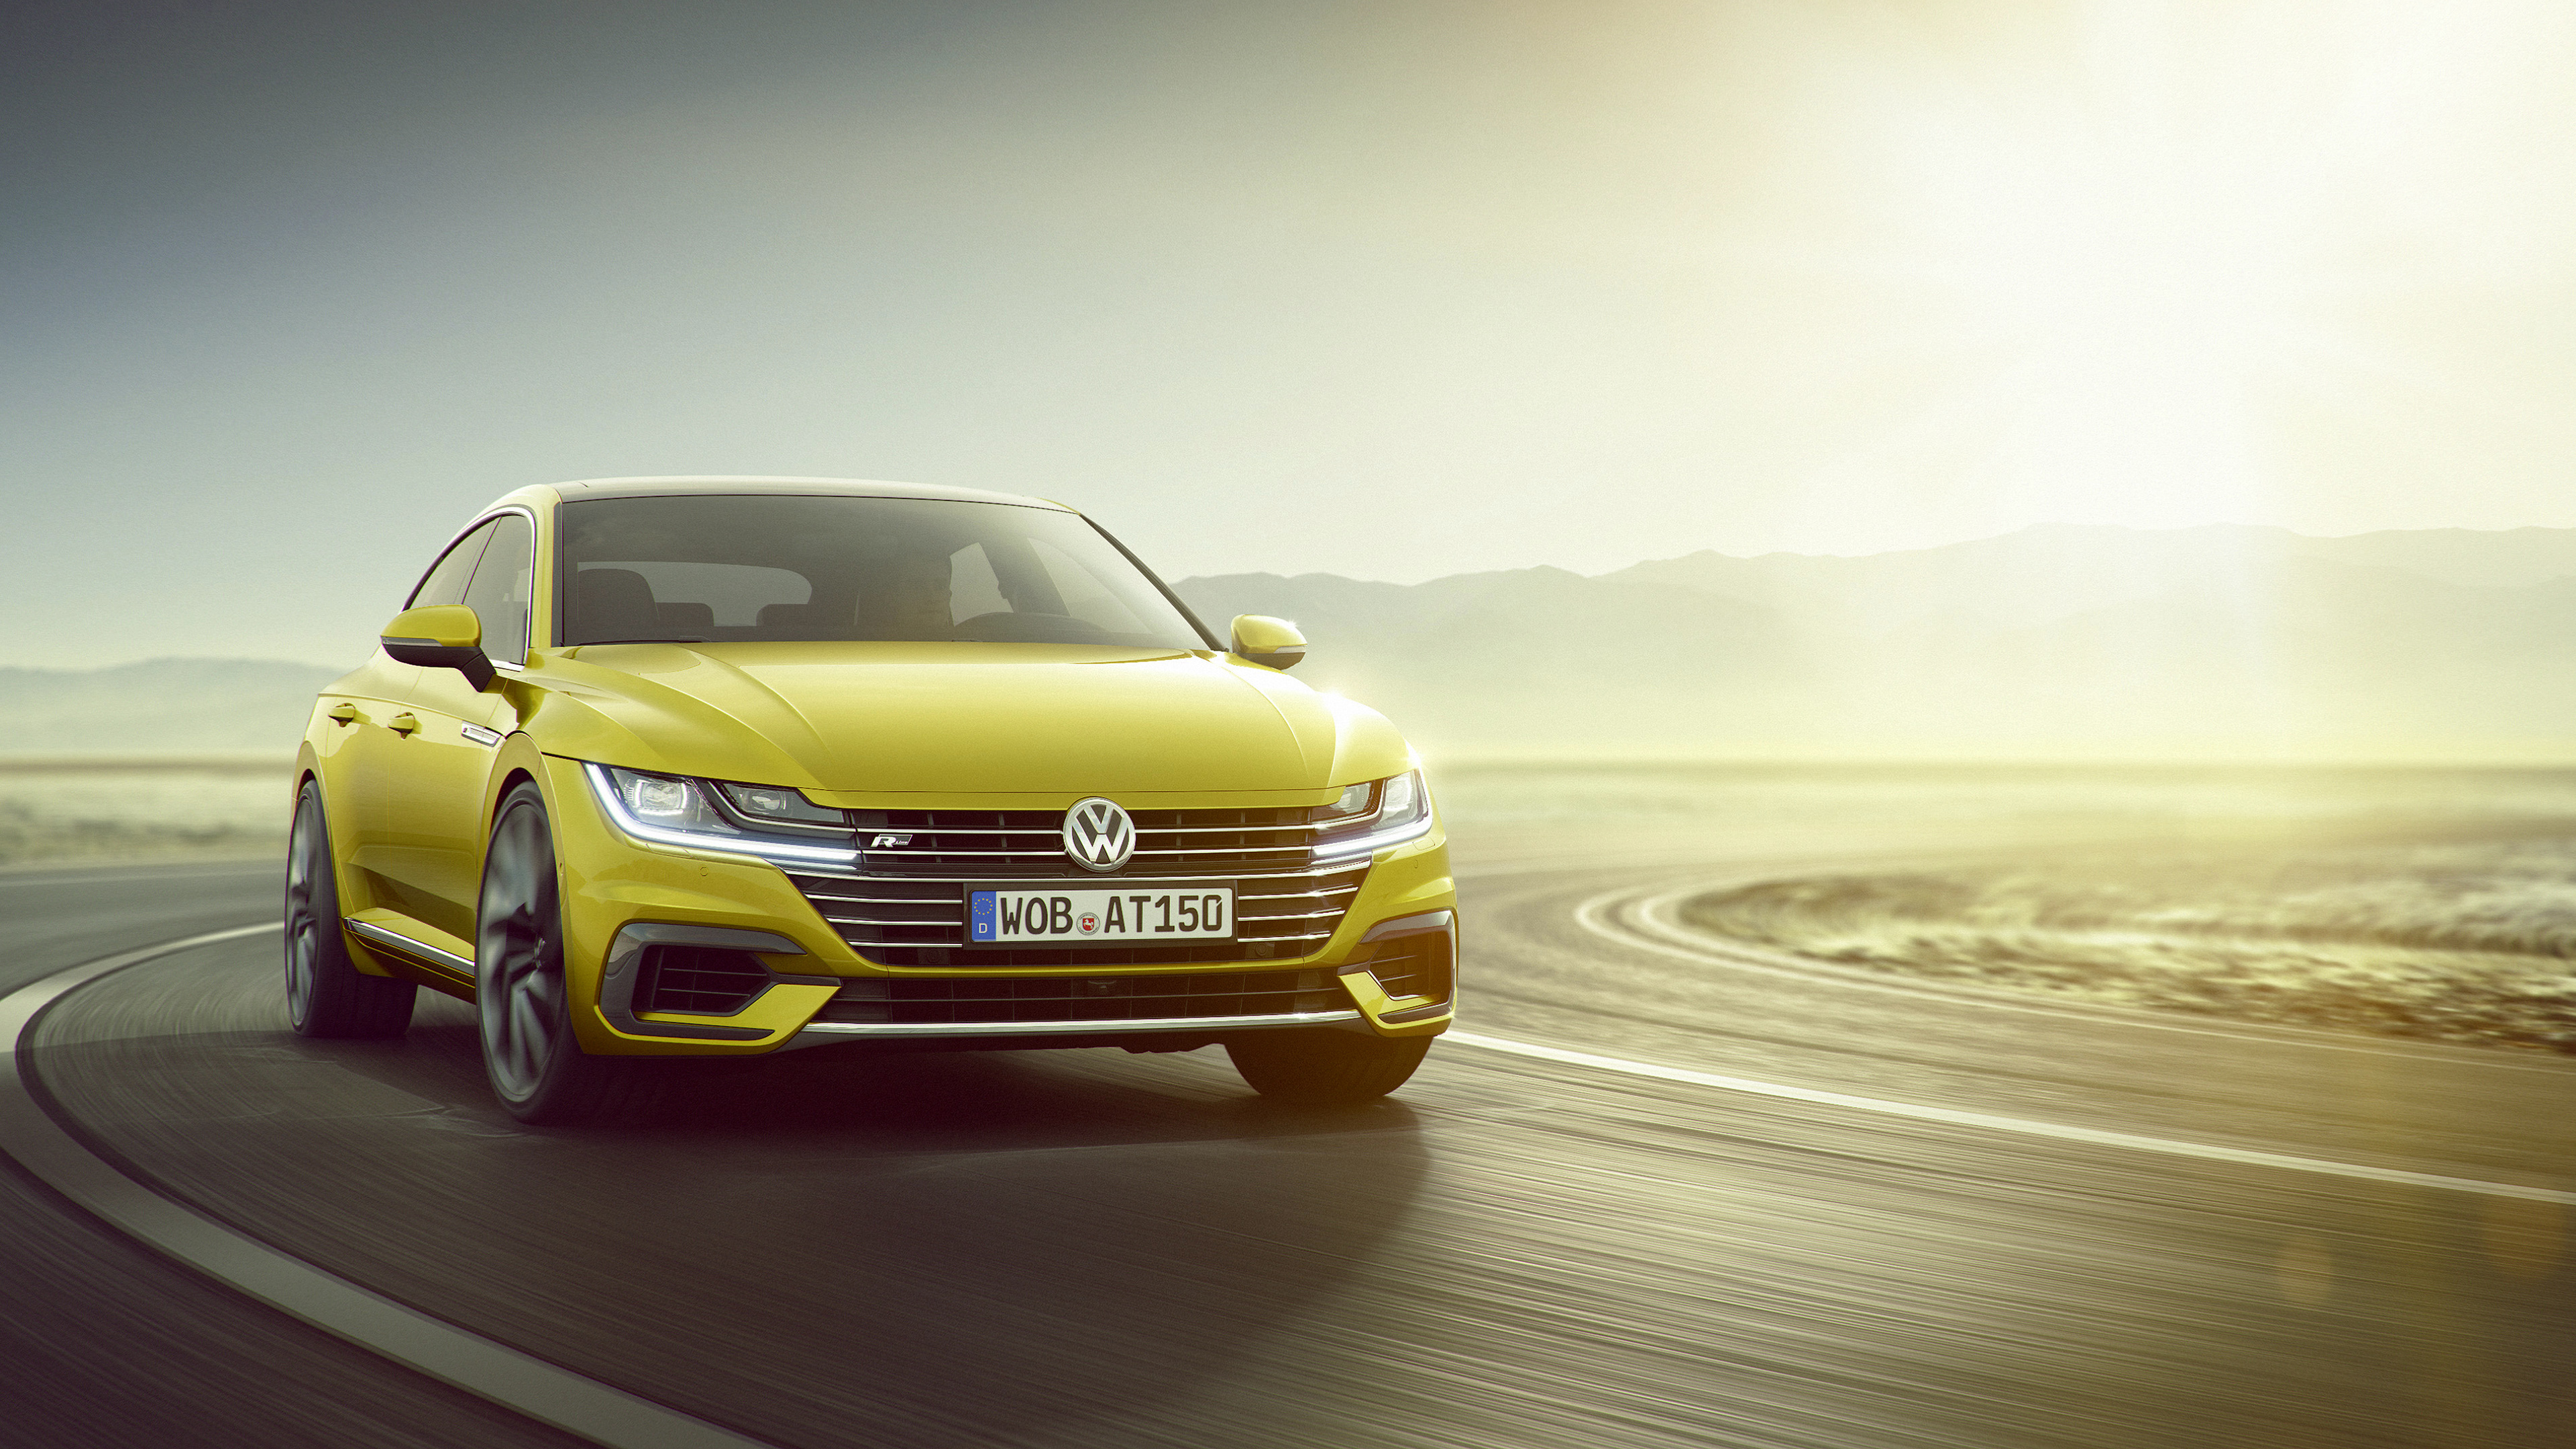 3840x2160 - Volkswagen Arteon Wallpapers 3